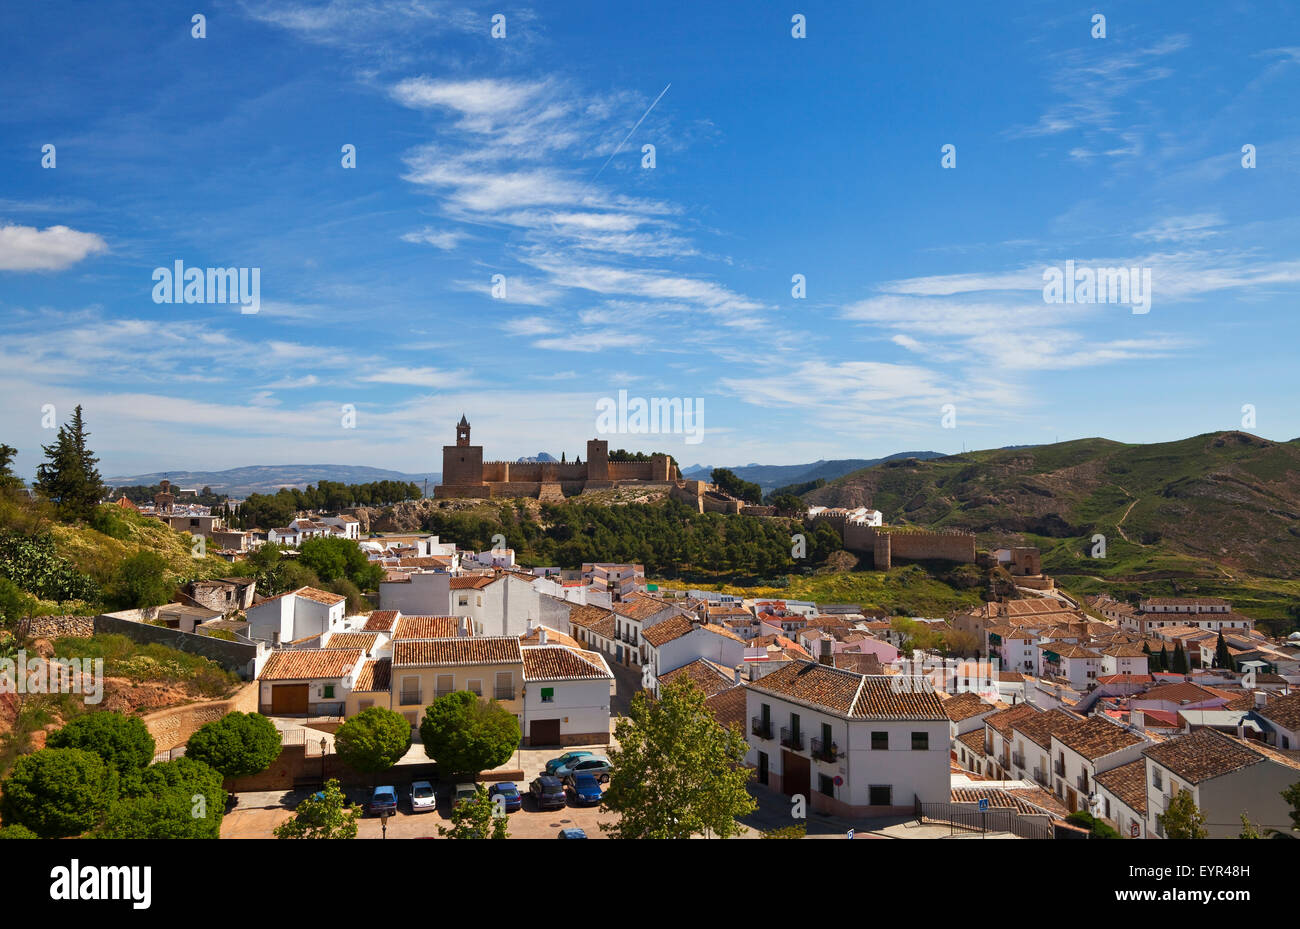 The Moorish built 8th Century Alcazaba (castle) and town of Antequera,  Province of Málaga, Andalusia, Spain - Stock Image